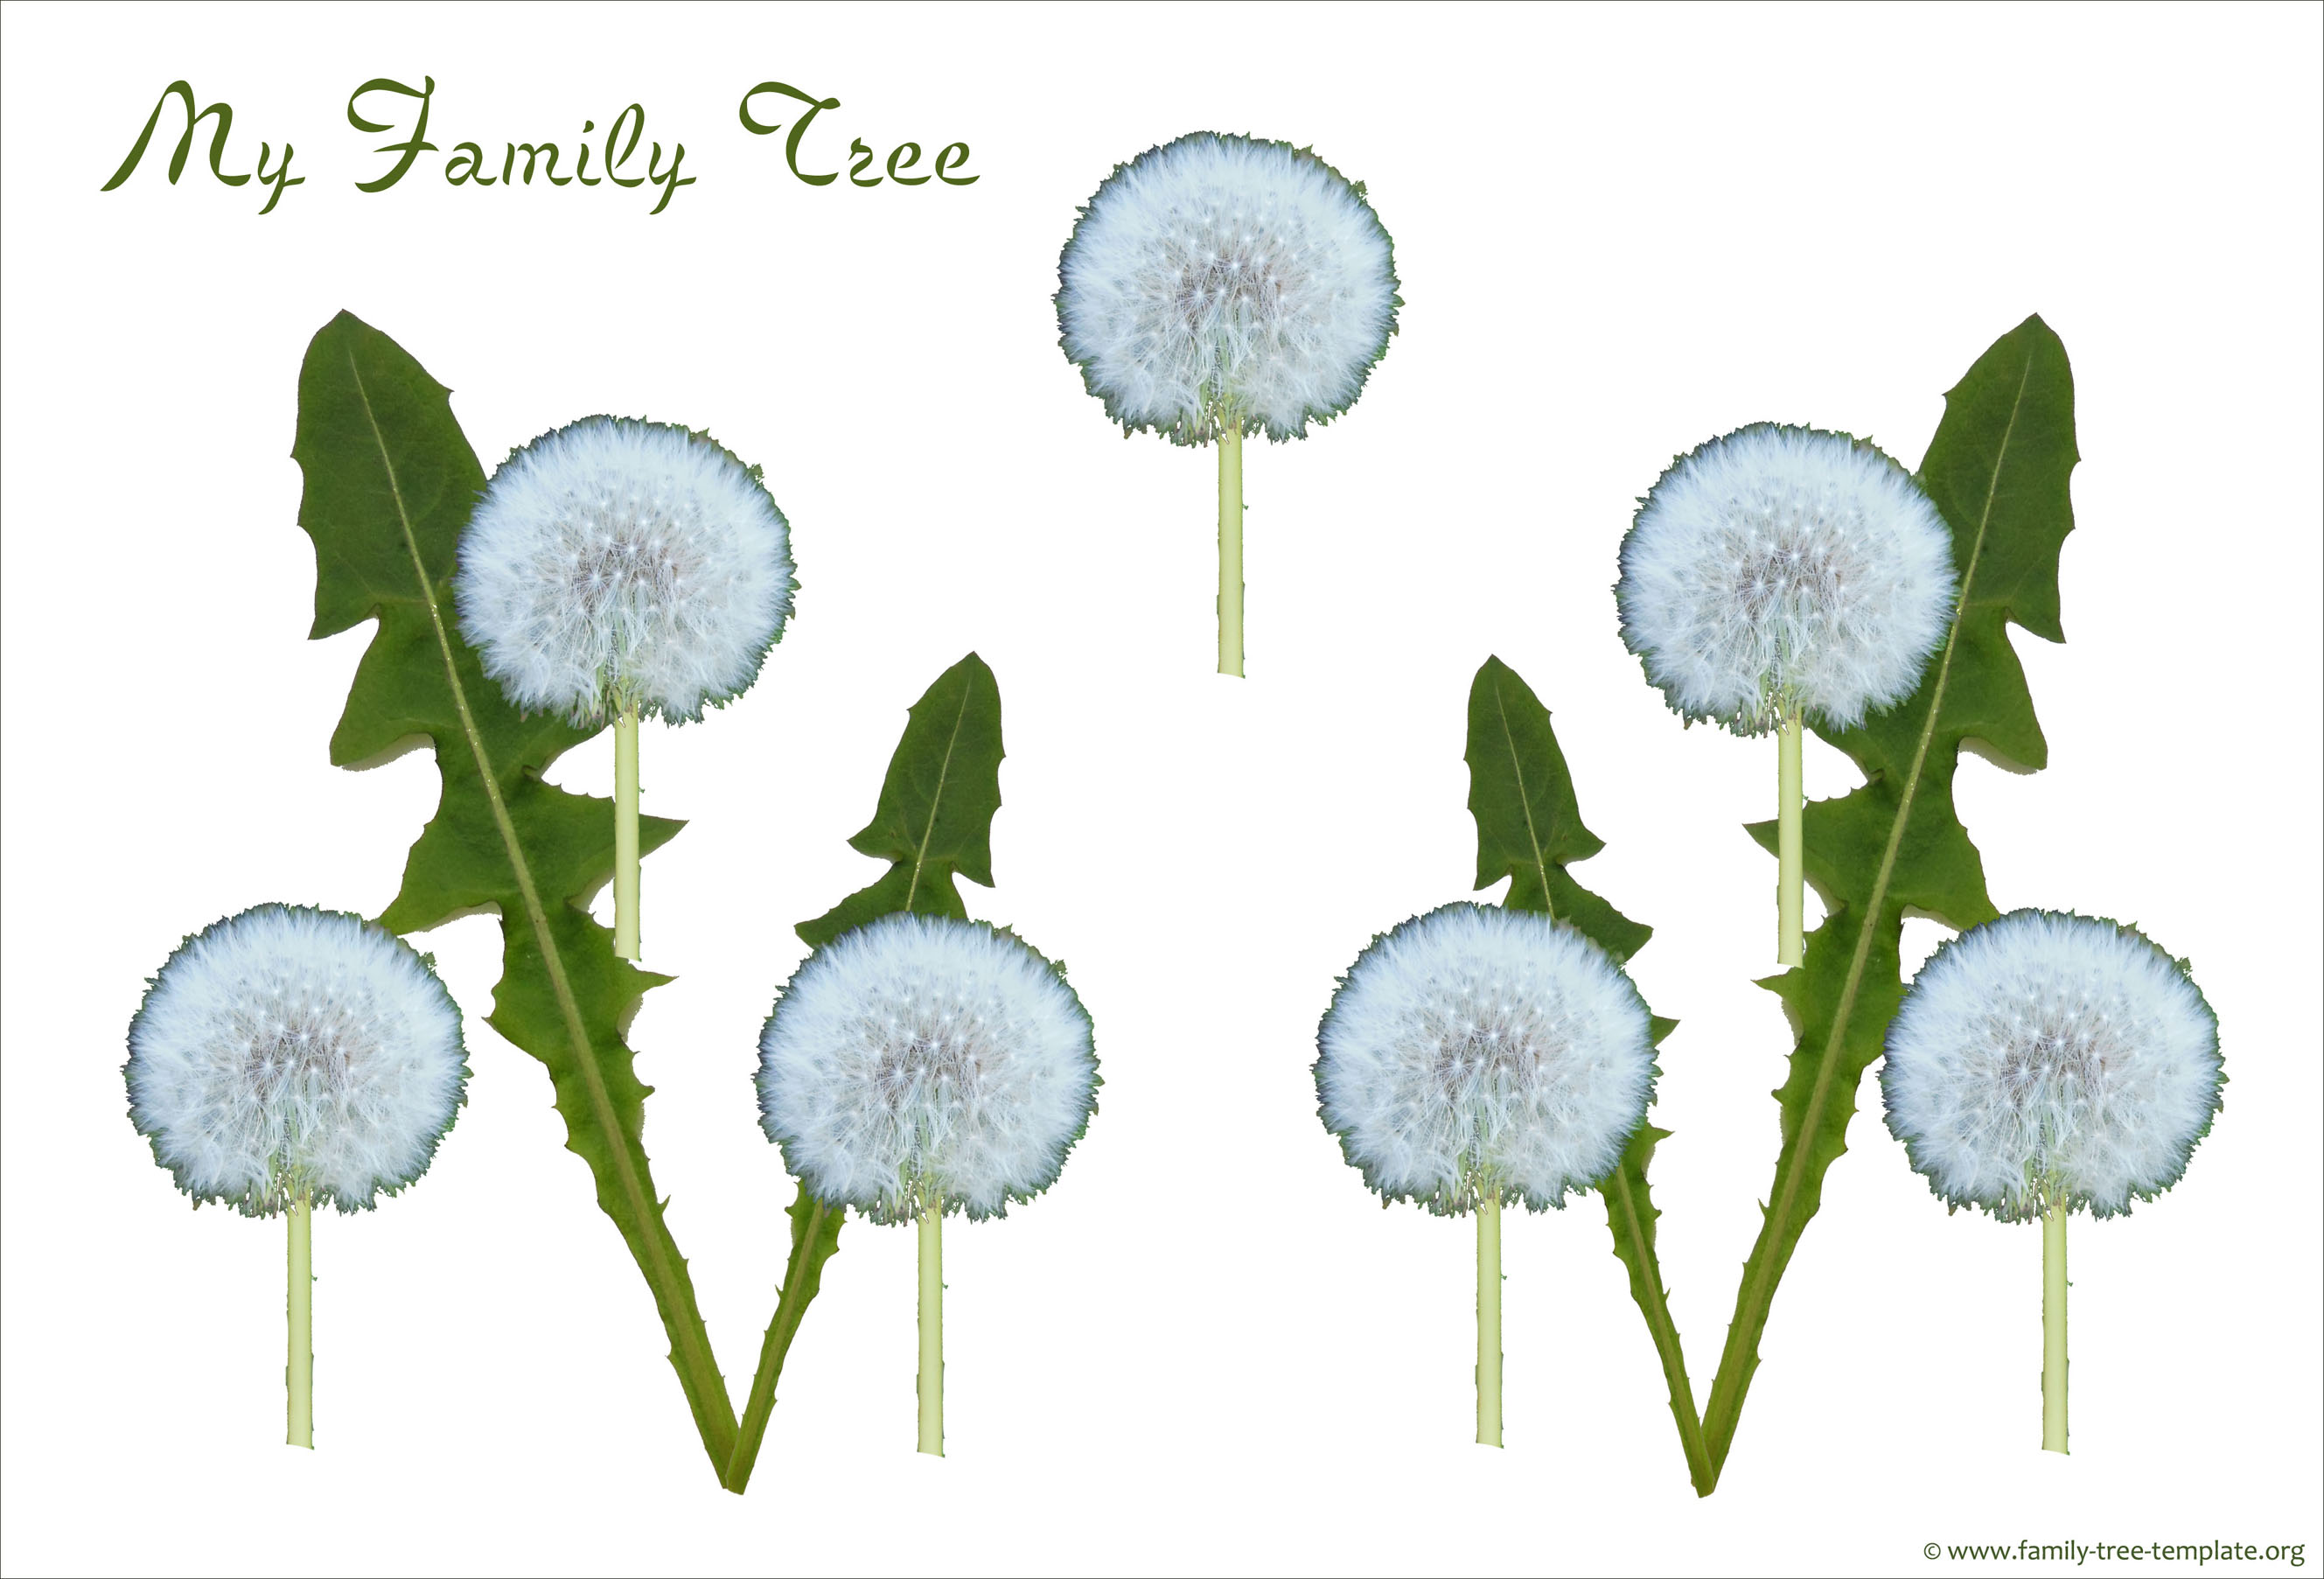 Simple family tree with 3 generations for the small child.